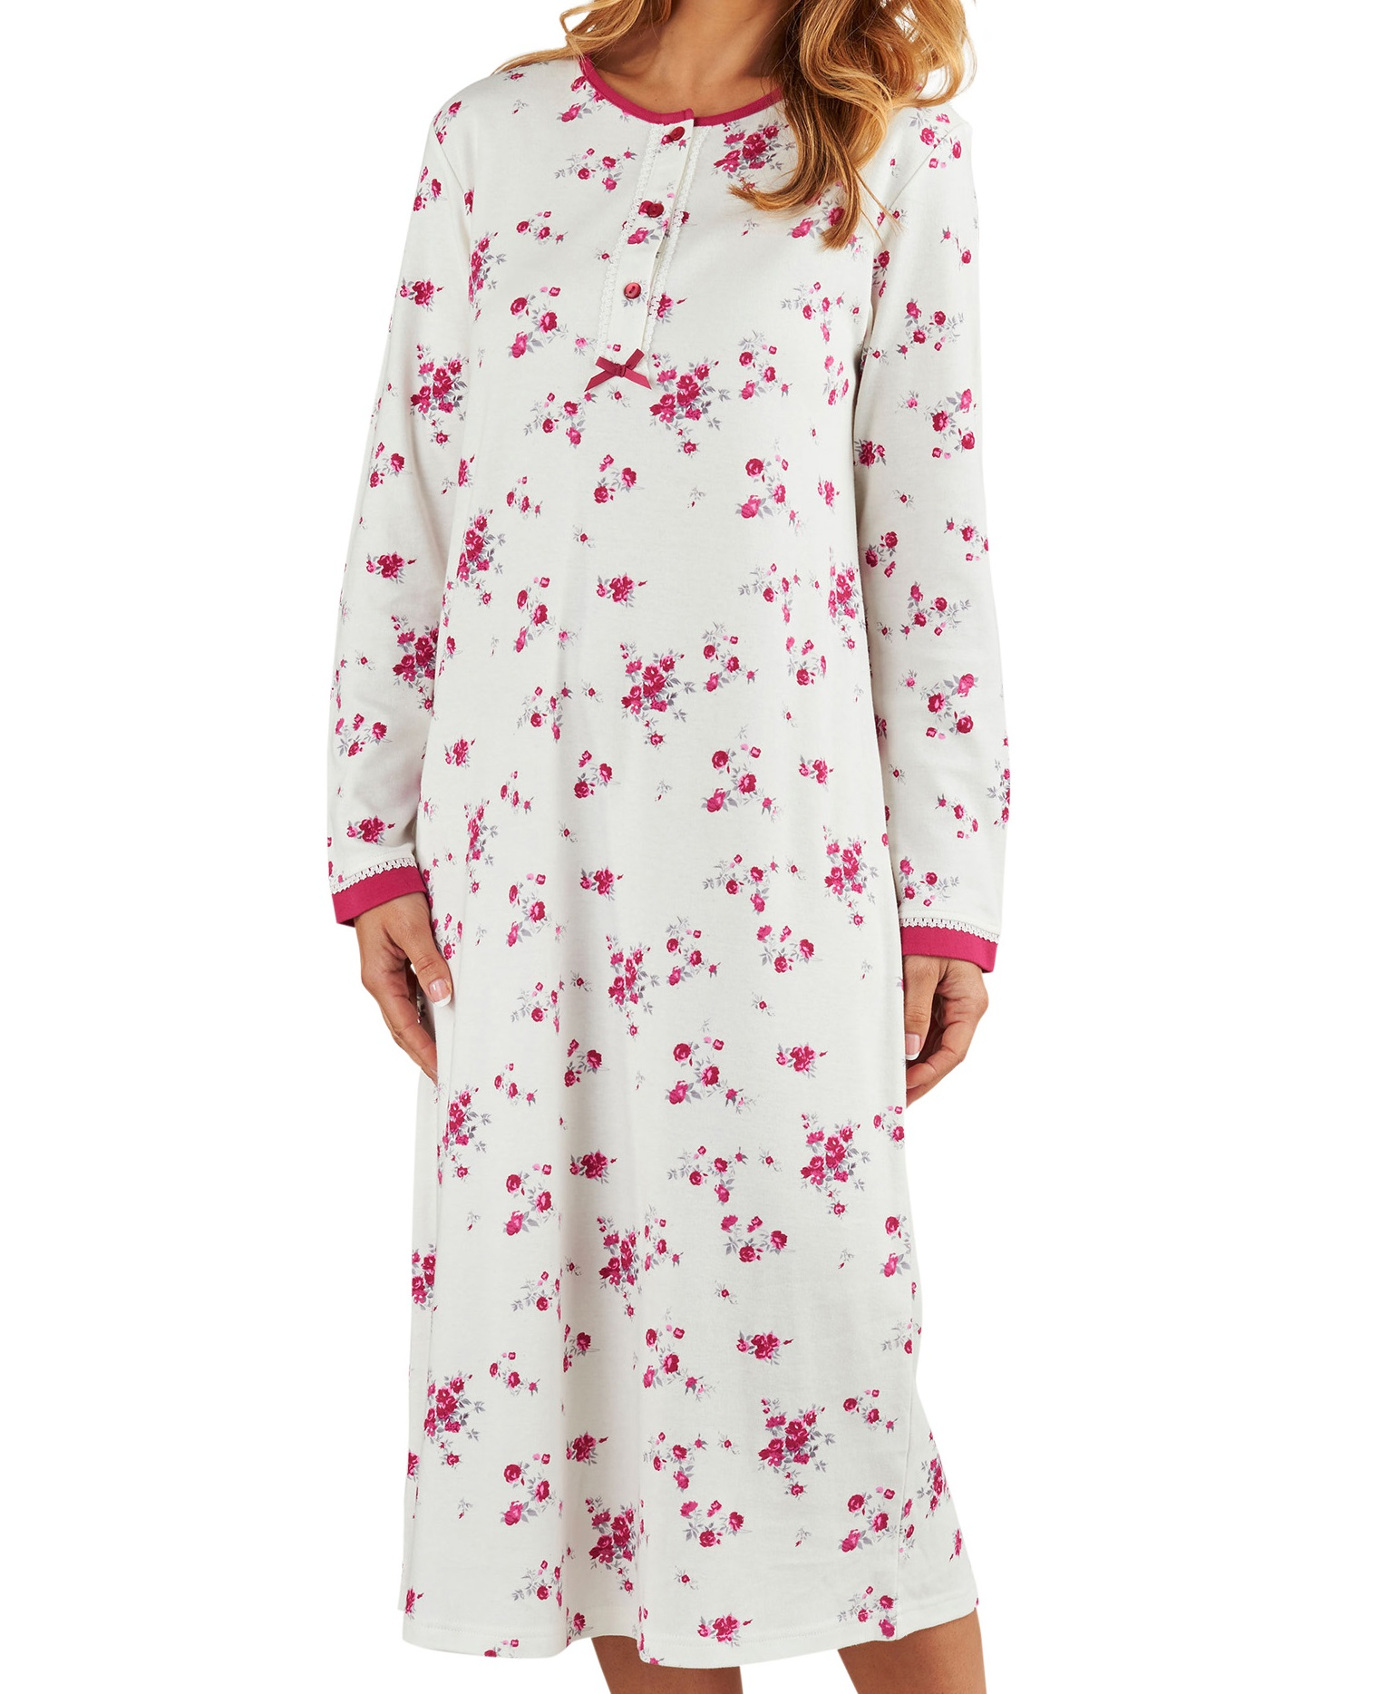 Nightdress Womens Long Sleeved Floral 100% Jersey Cotton Nightie Slenderella 5ca83f8b67